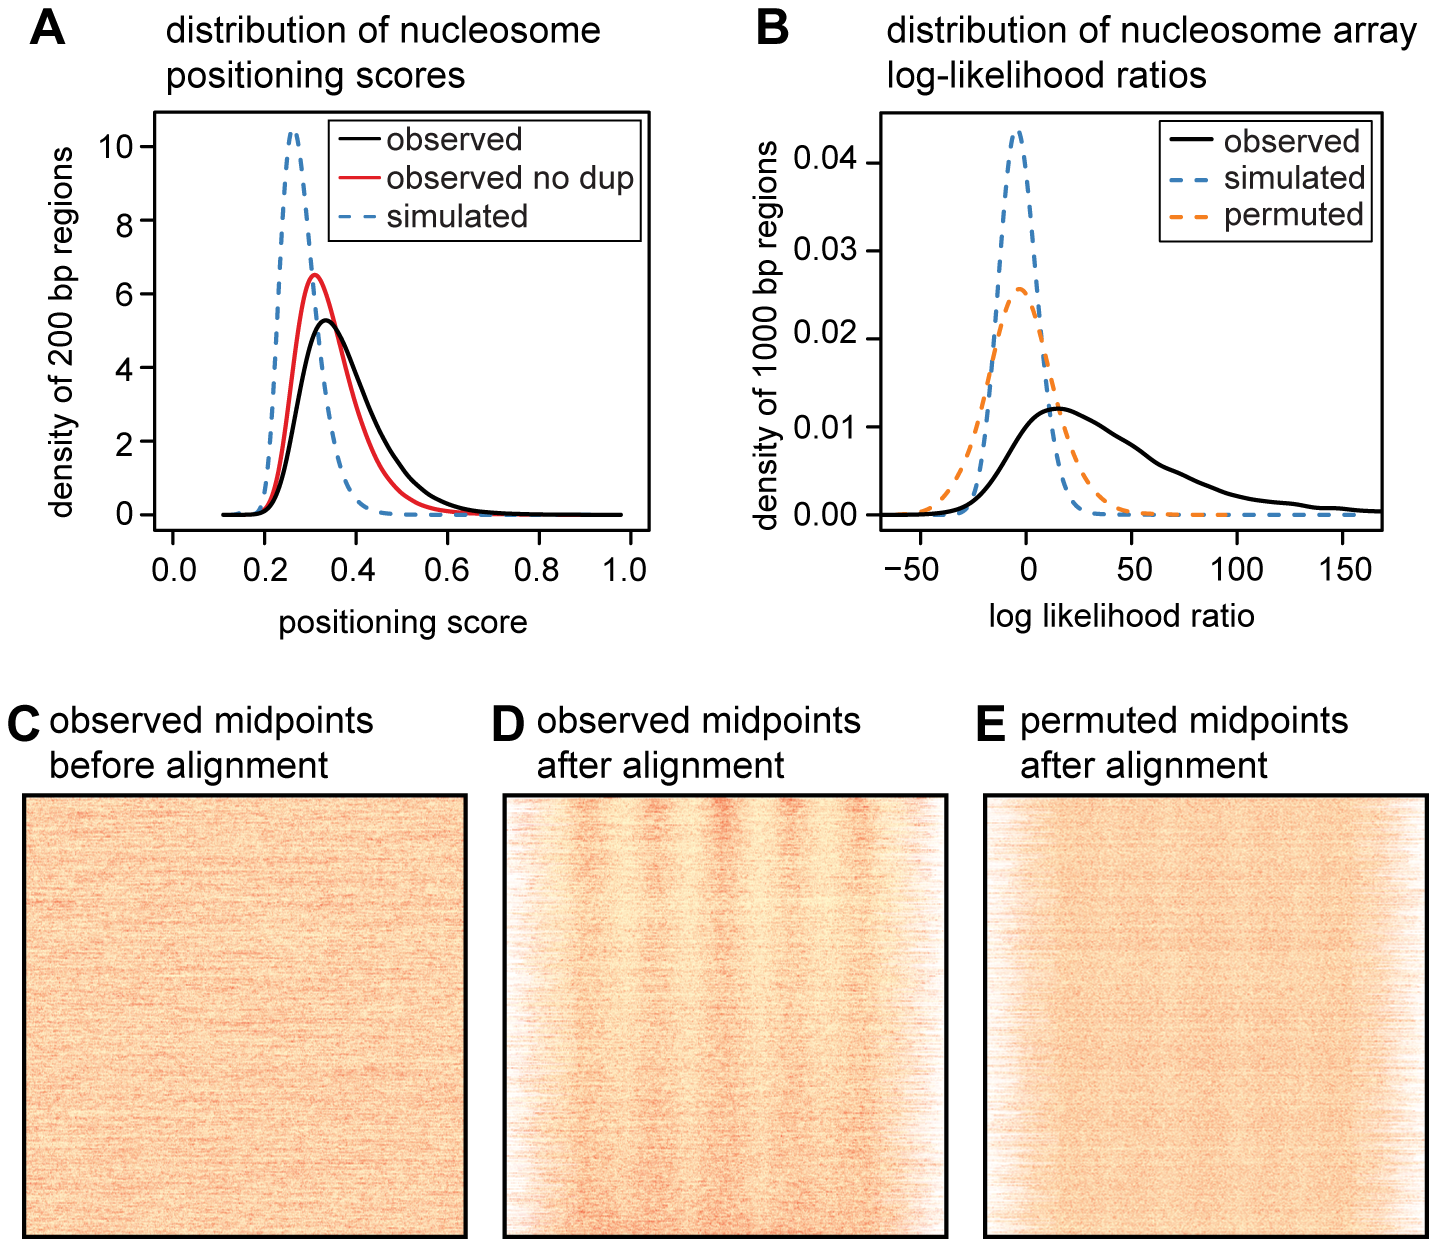 Quantifying translational nucleosome positioning in the human genome.